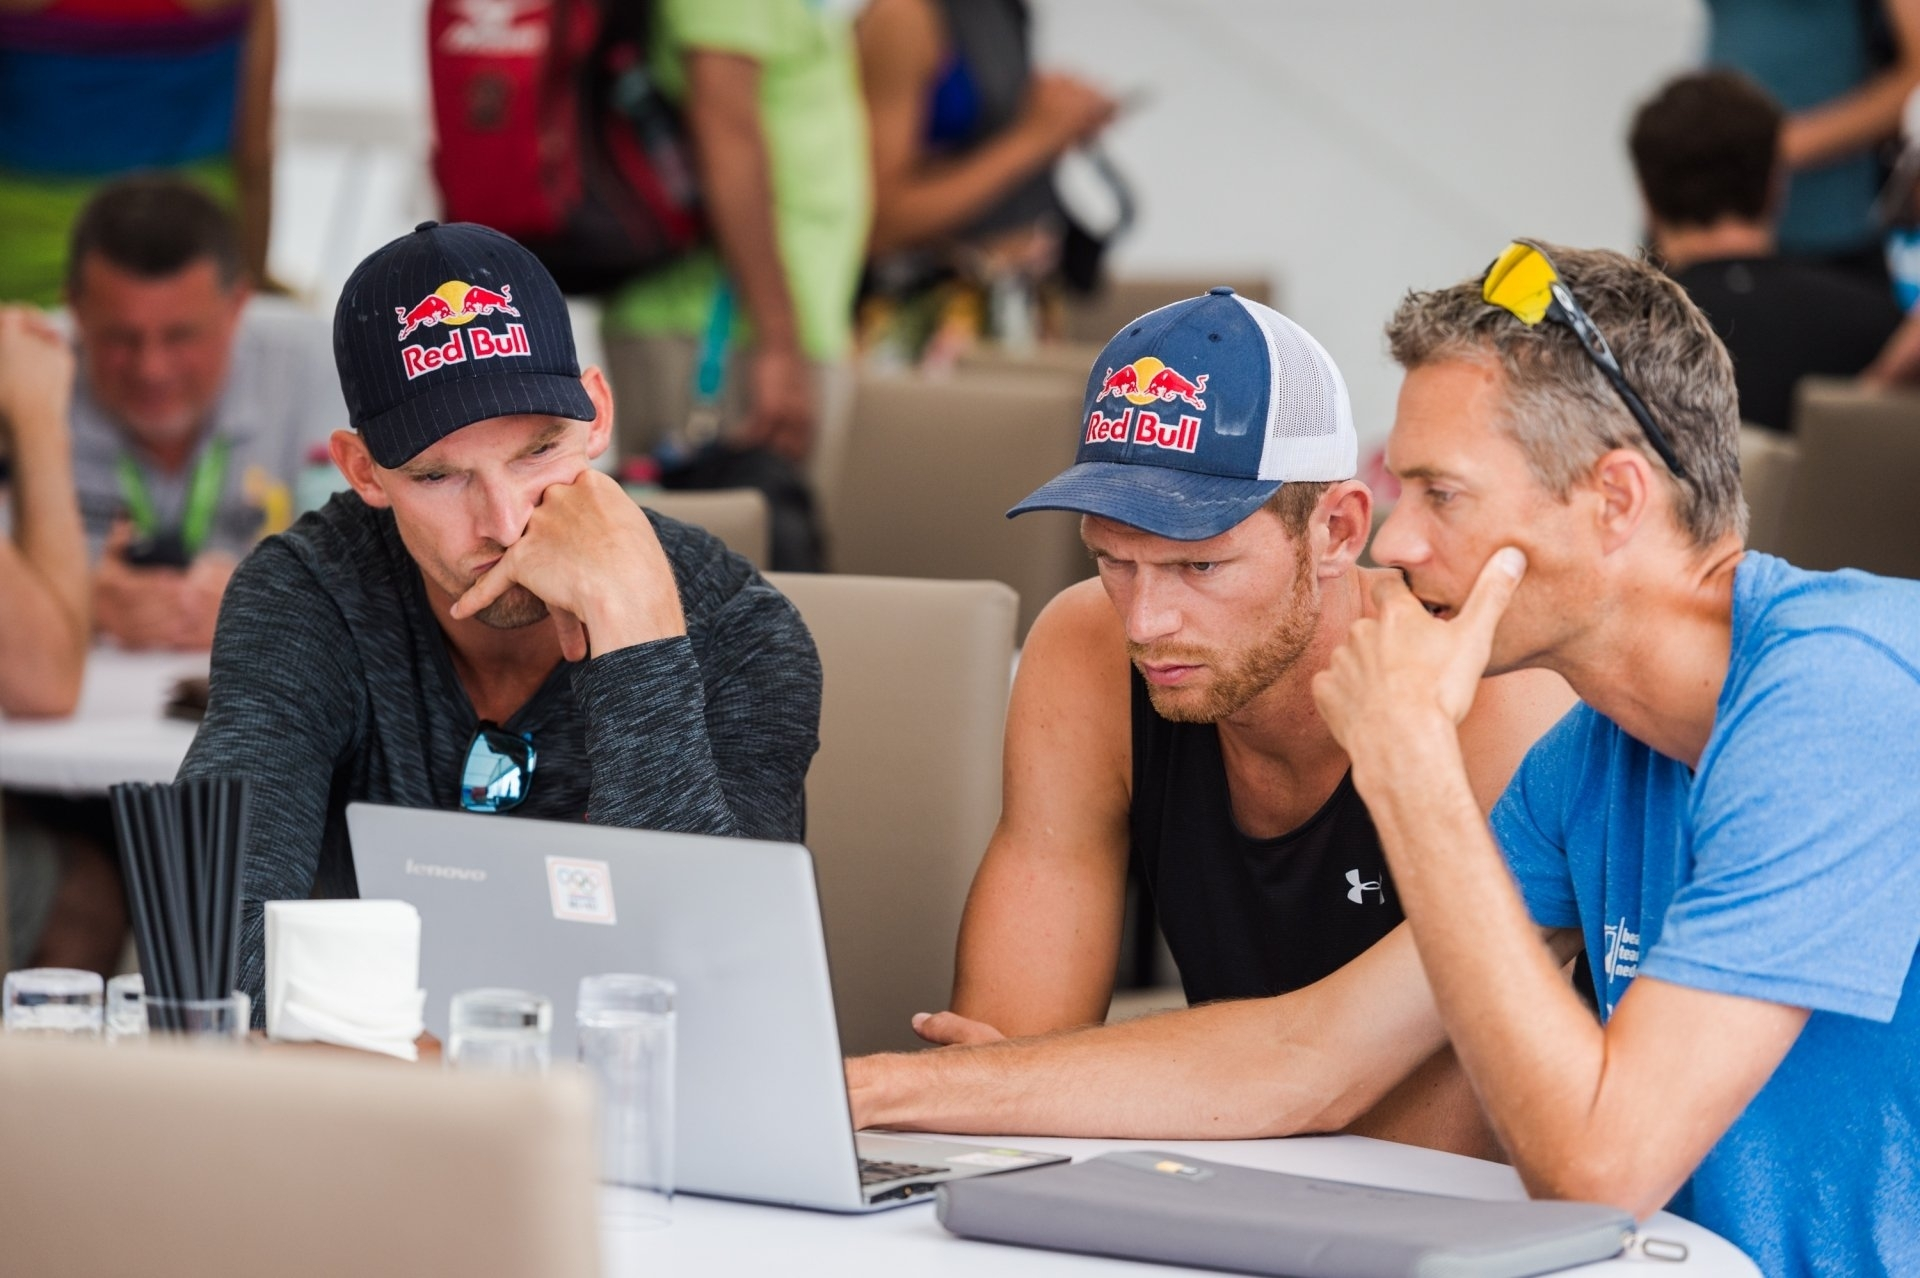 Coaching and learning never stops. Dutchmen Alex Brouwer and Robert Meeuwsen get a last-minute tutorial